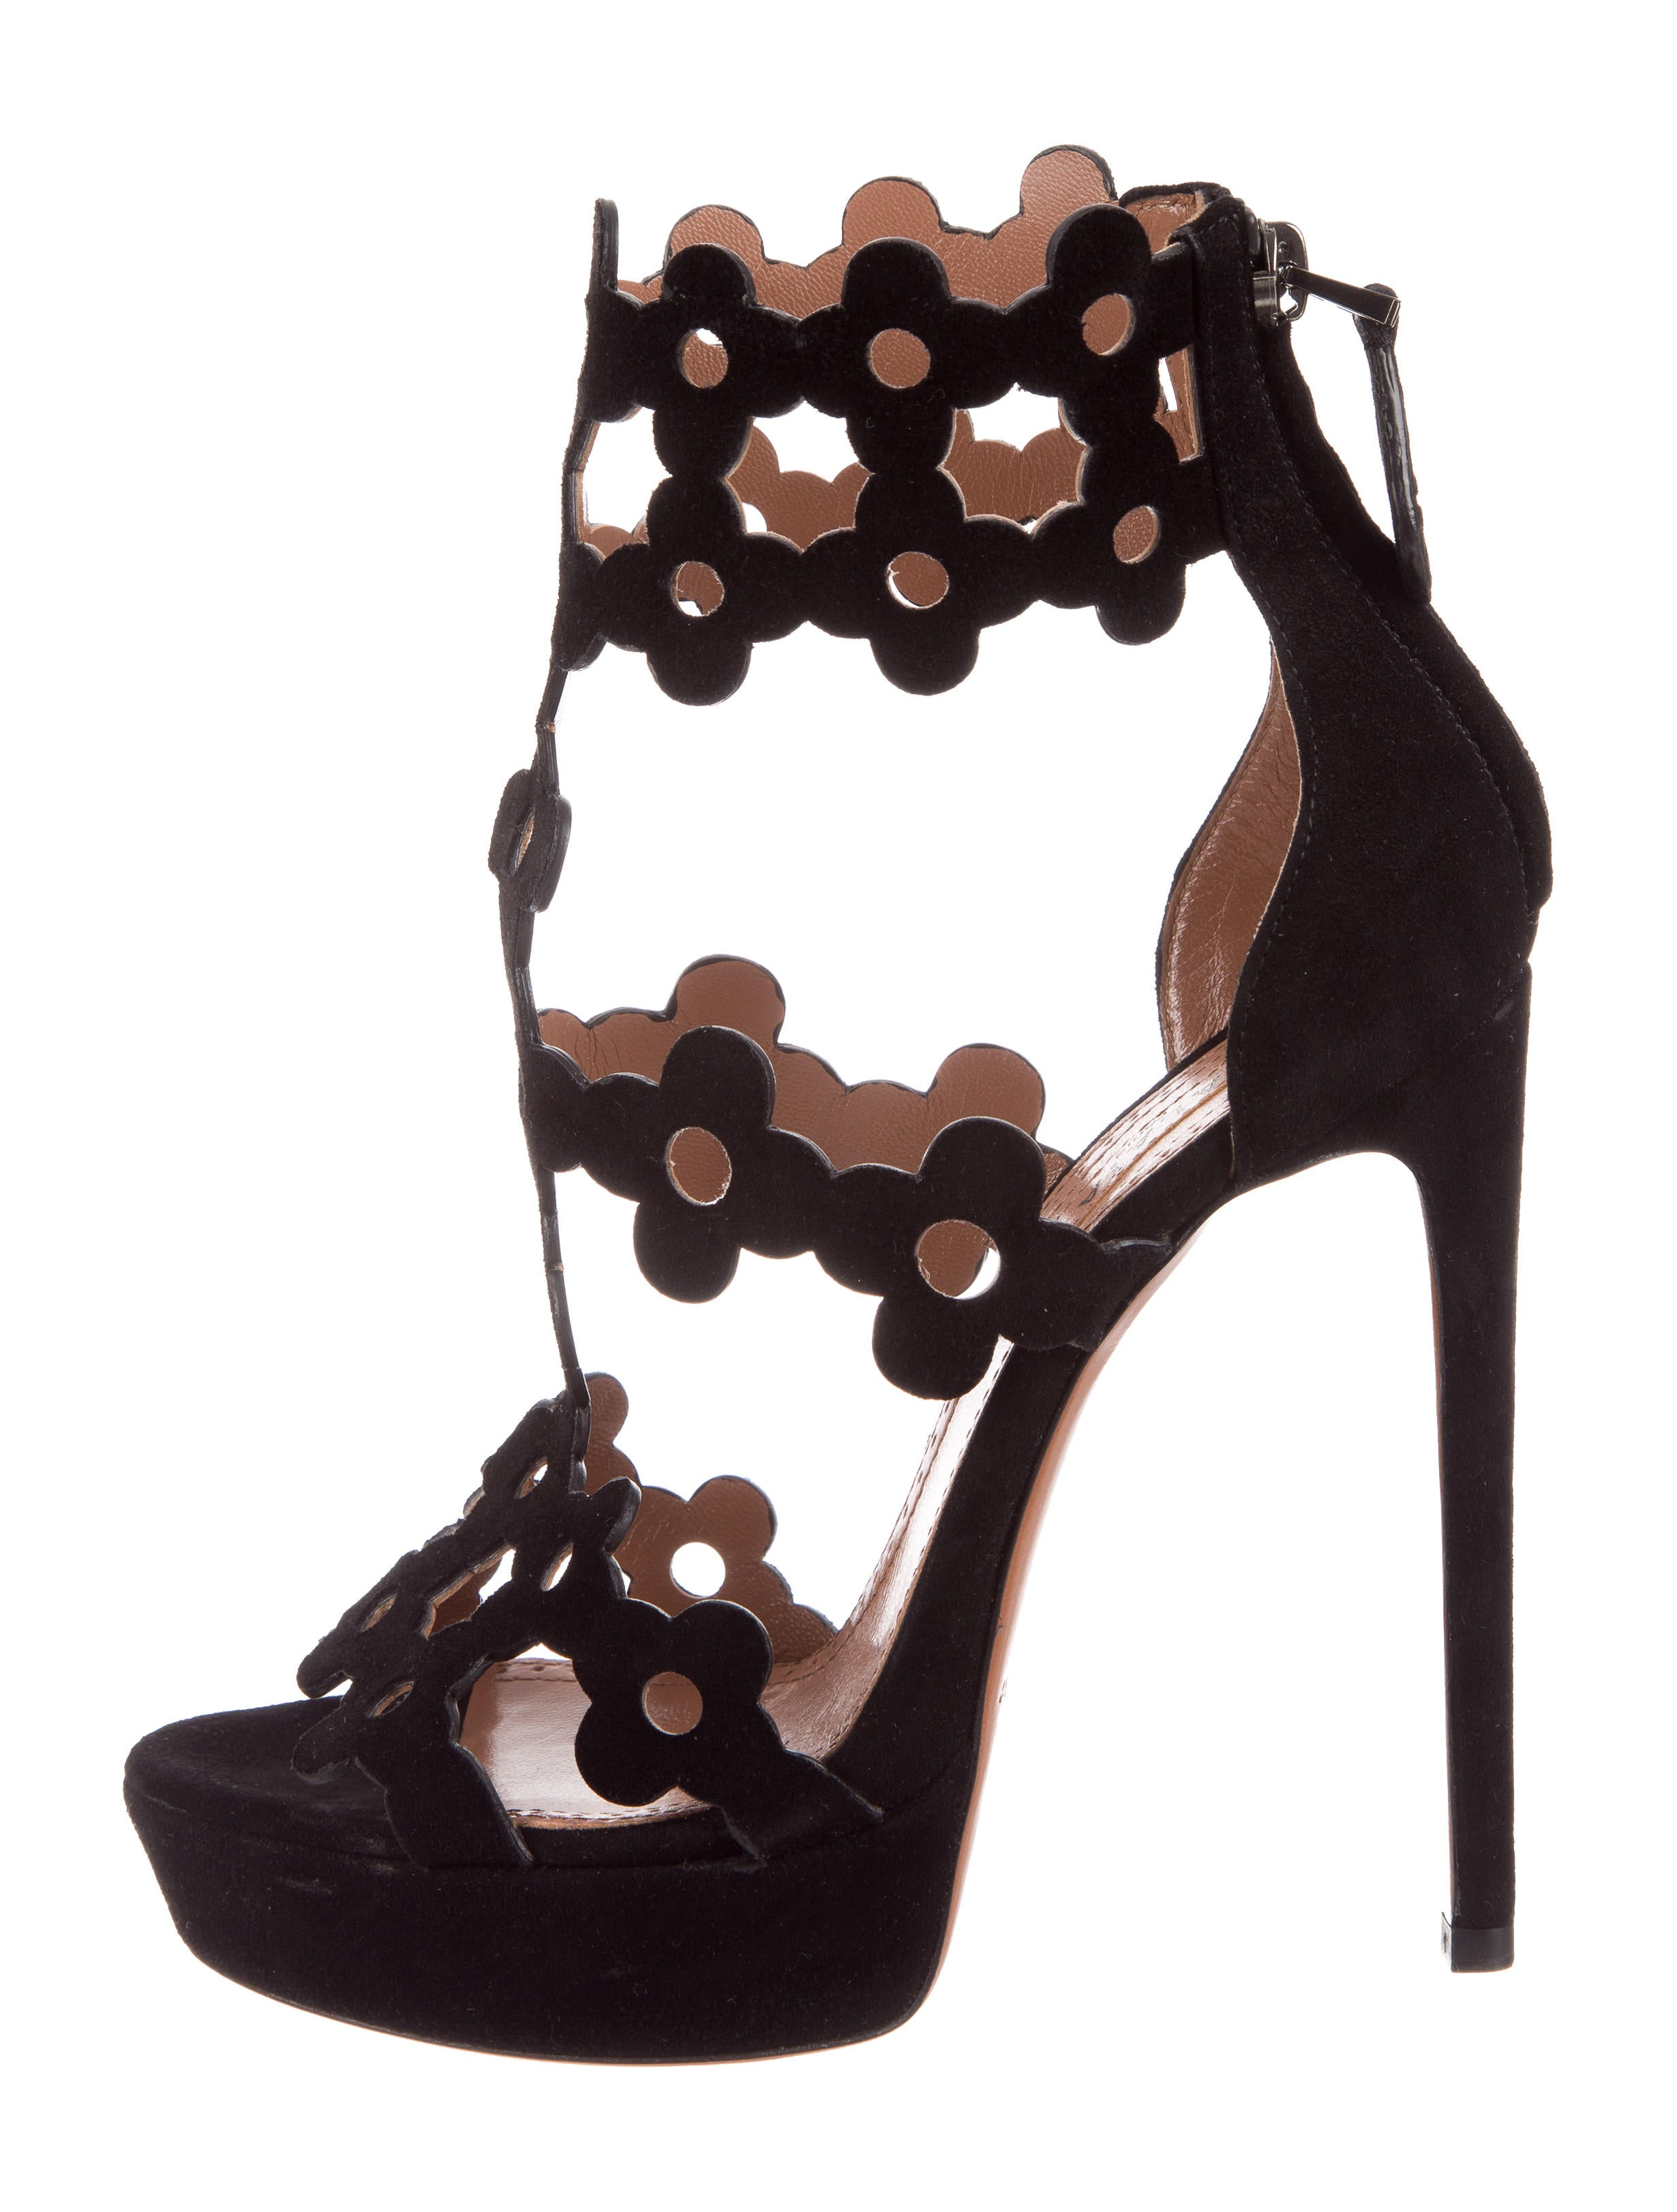 outlet store locations discounts cheap price Alaïa Scalloped Laser Cut Sandals geniue stockist sale online quality from china wholesale for sale very cheap 0A29Sp